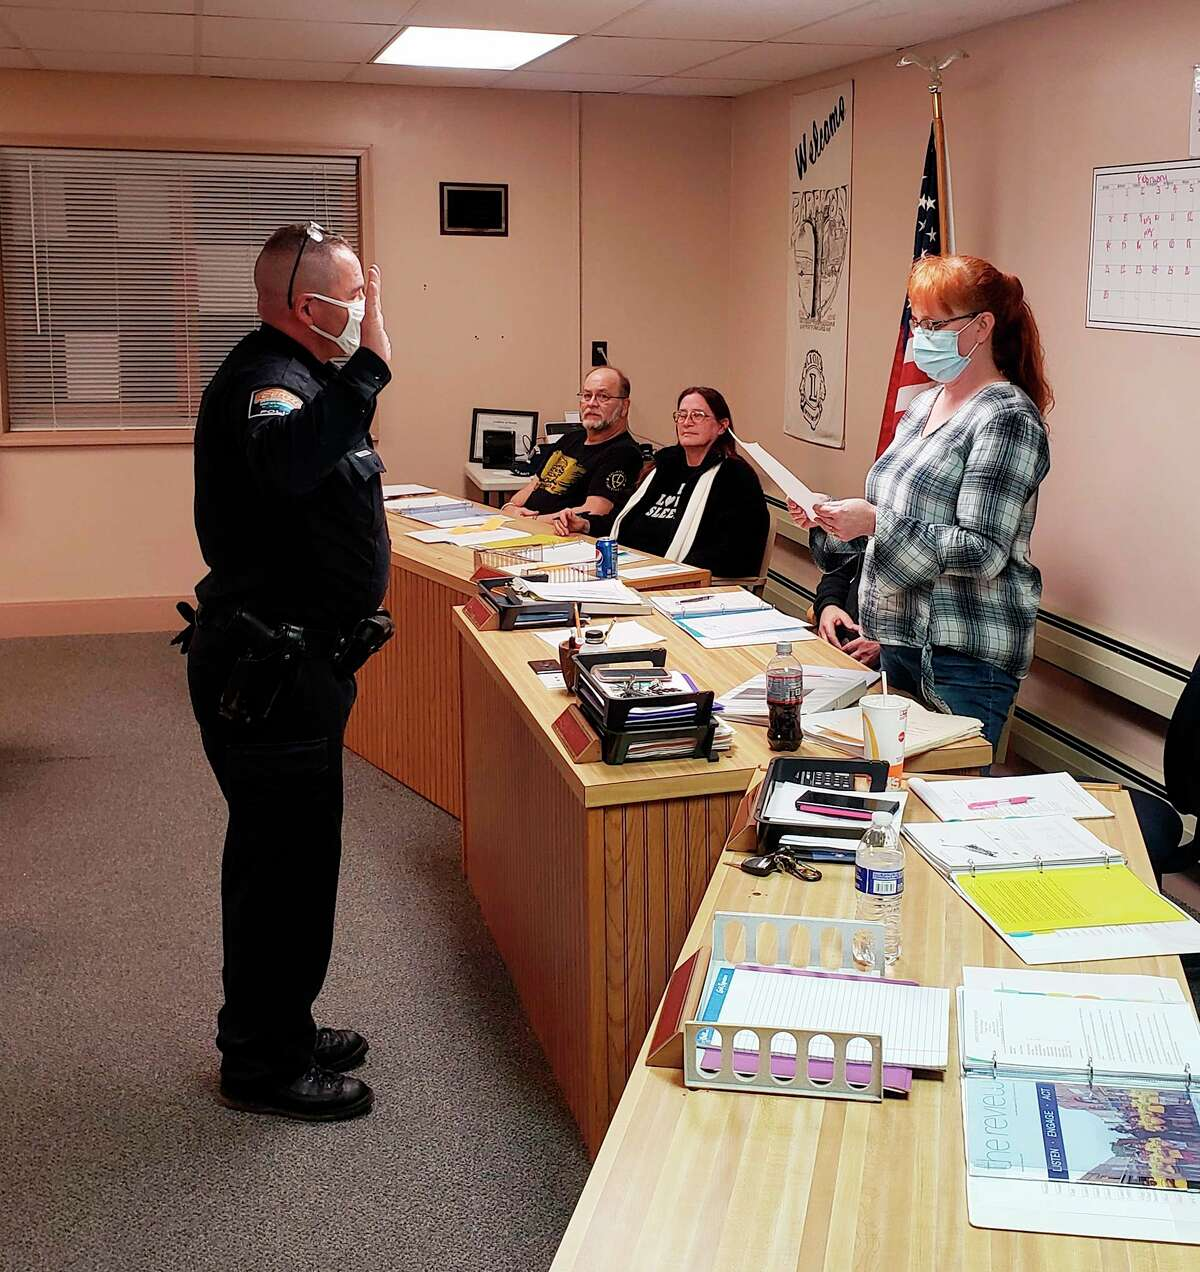 This week, Scott Morgan was sworn in as the new police chief in the Village of Barryton, who replaces now-Mecosta County Sheriff Brian Miller. The Mecosta County Sheriff's Office is looking forward in the continuing working relationship we have with the Barryton Police Department. (Photo courtesy of Mecosta County Sheriff's Office)